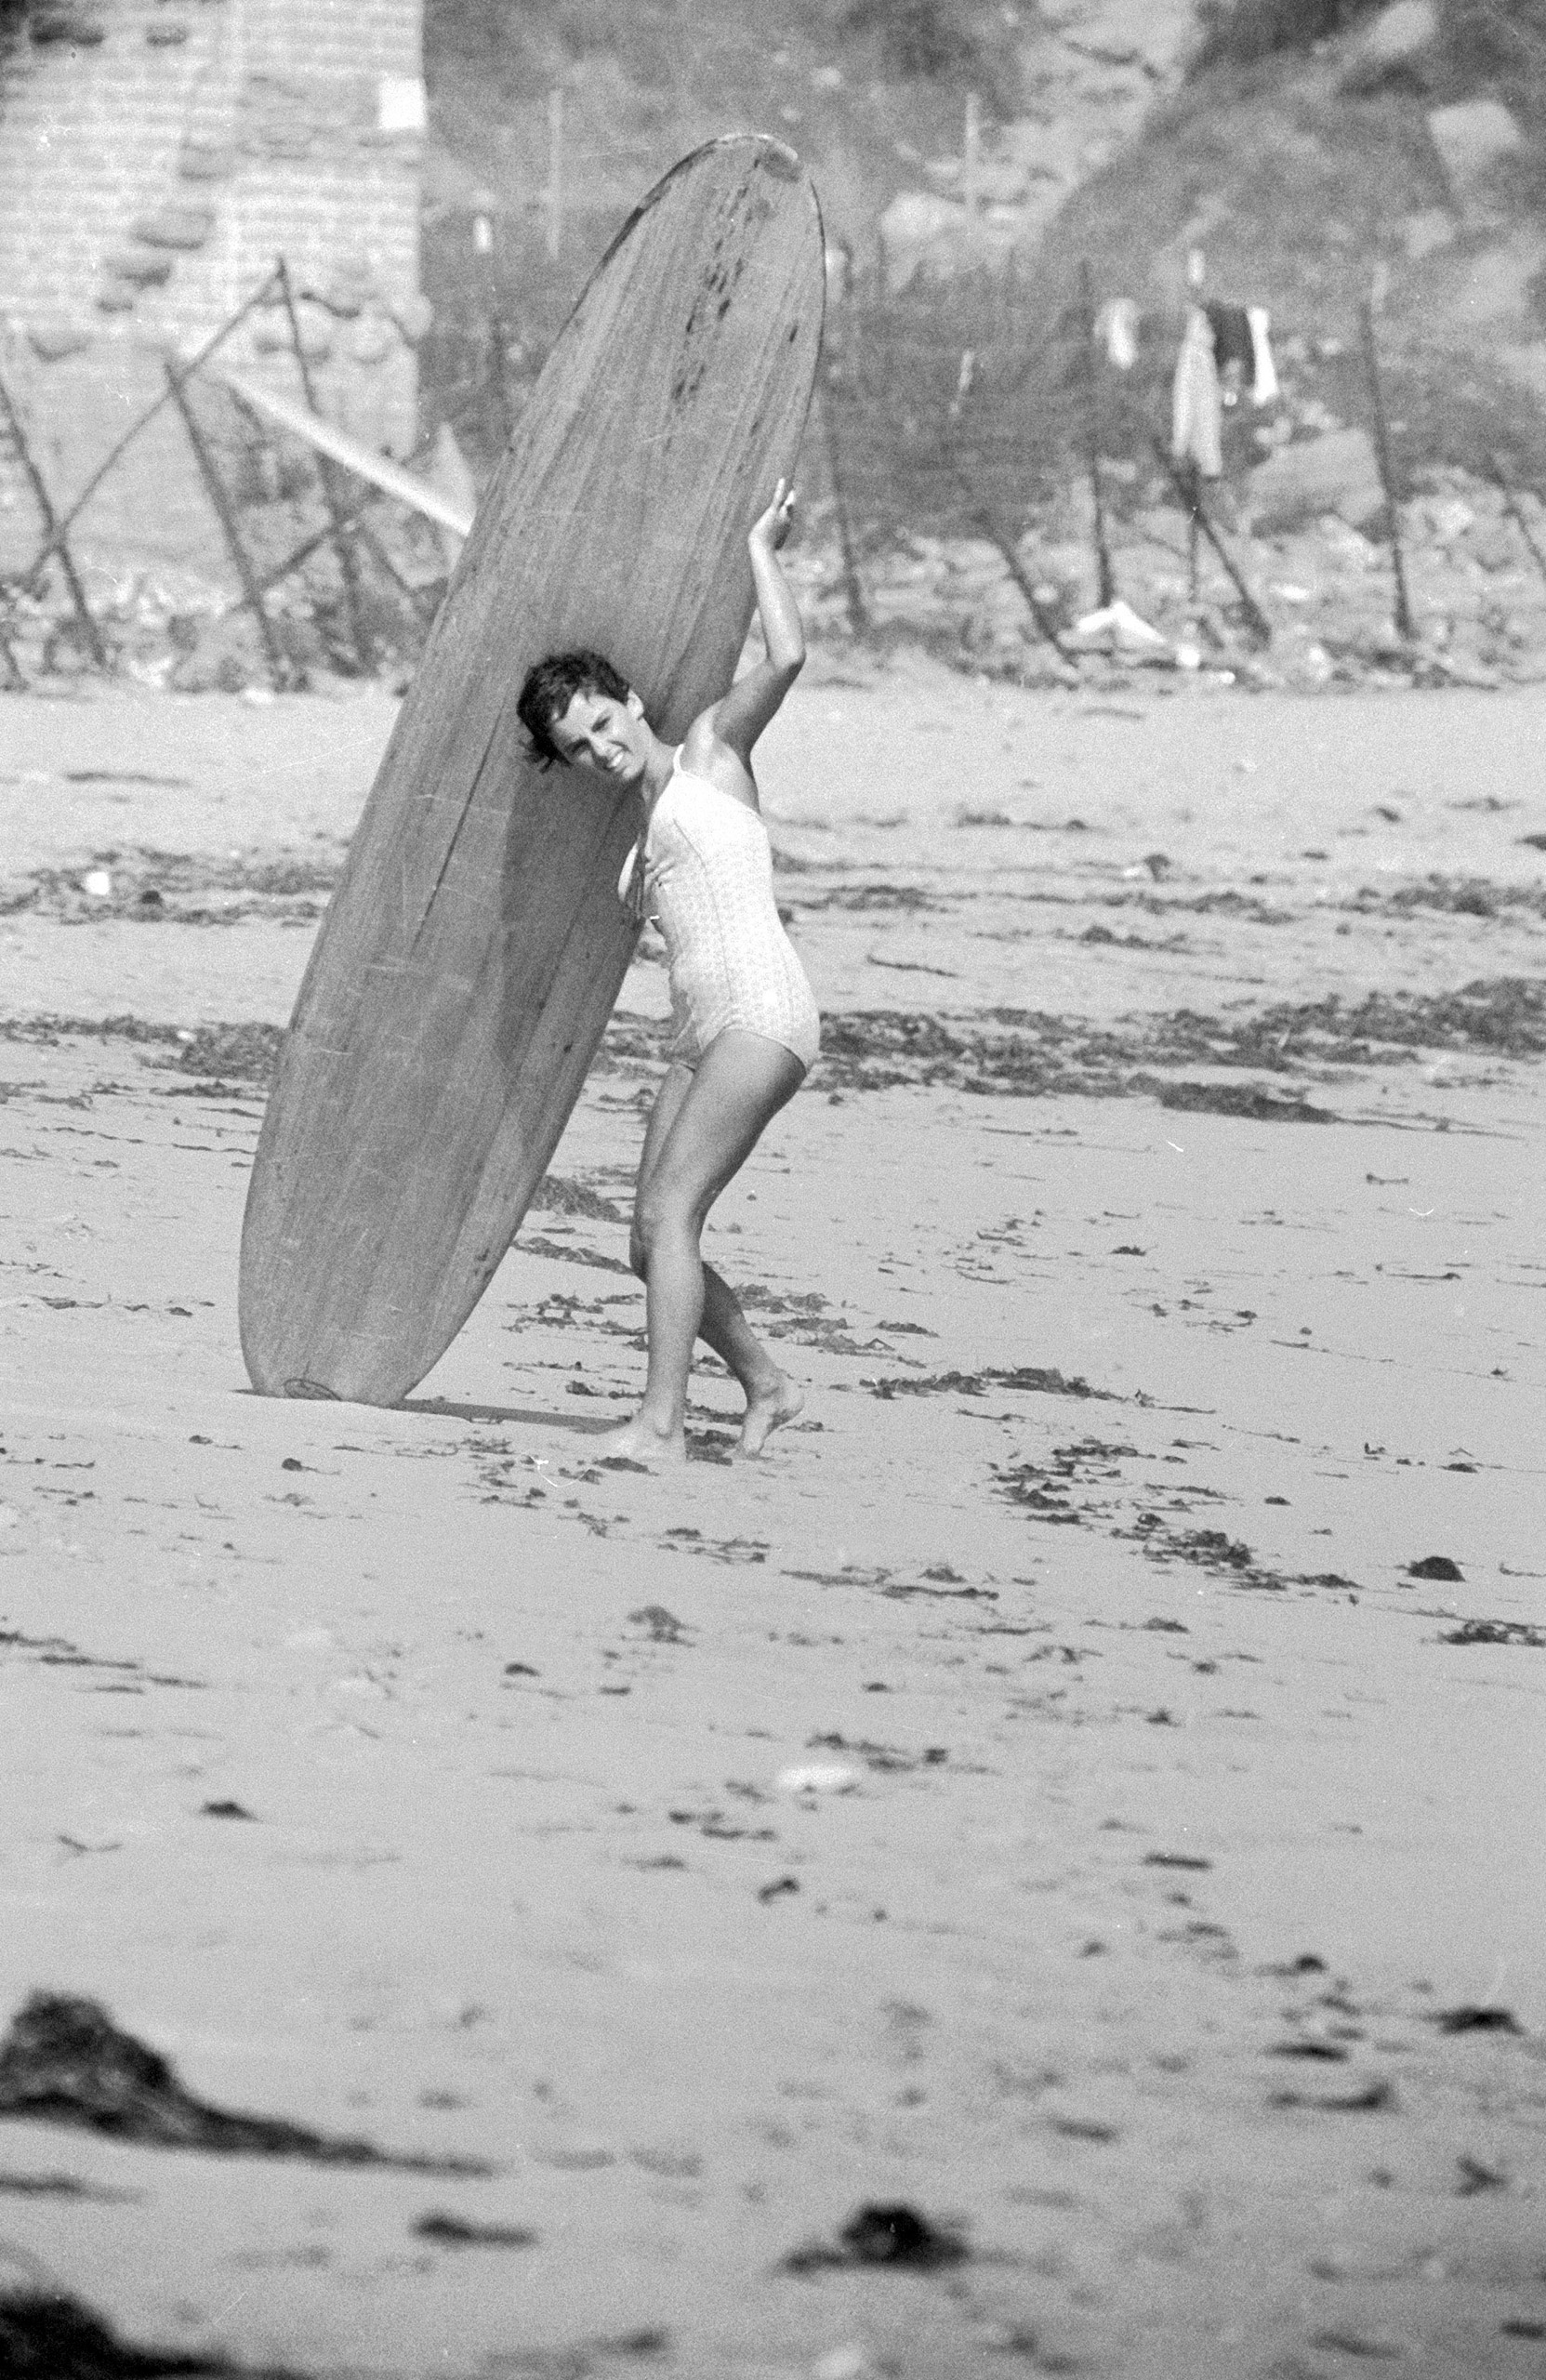 16 yr. old surfer Kathy (Gidget) Kohner on the beach with her surfboard, 1957.